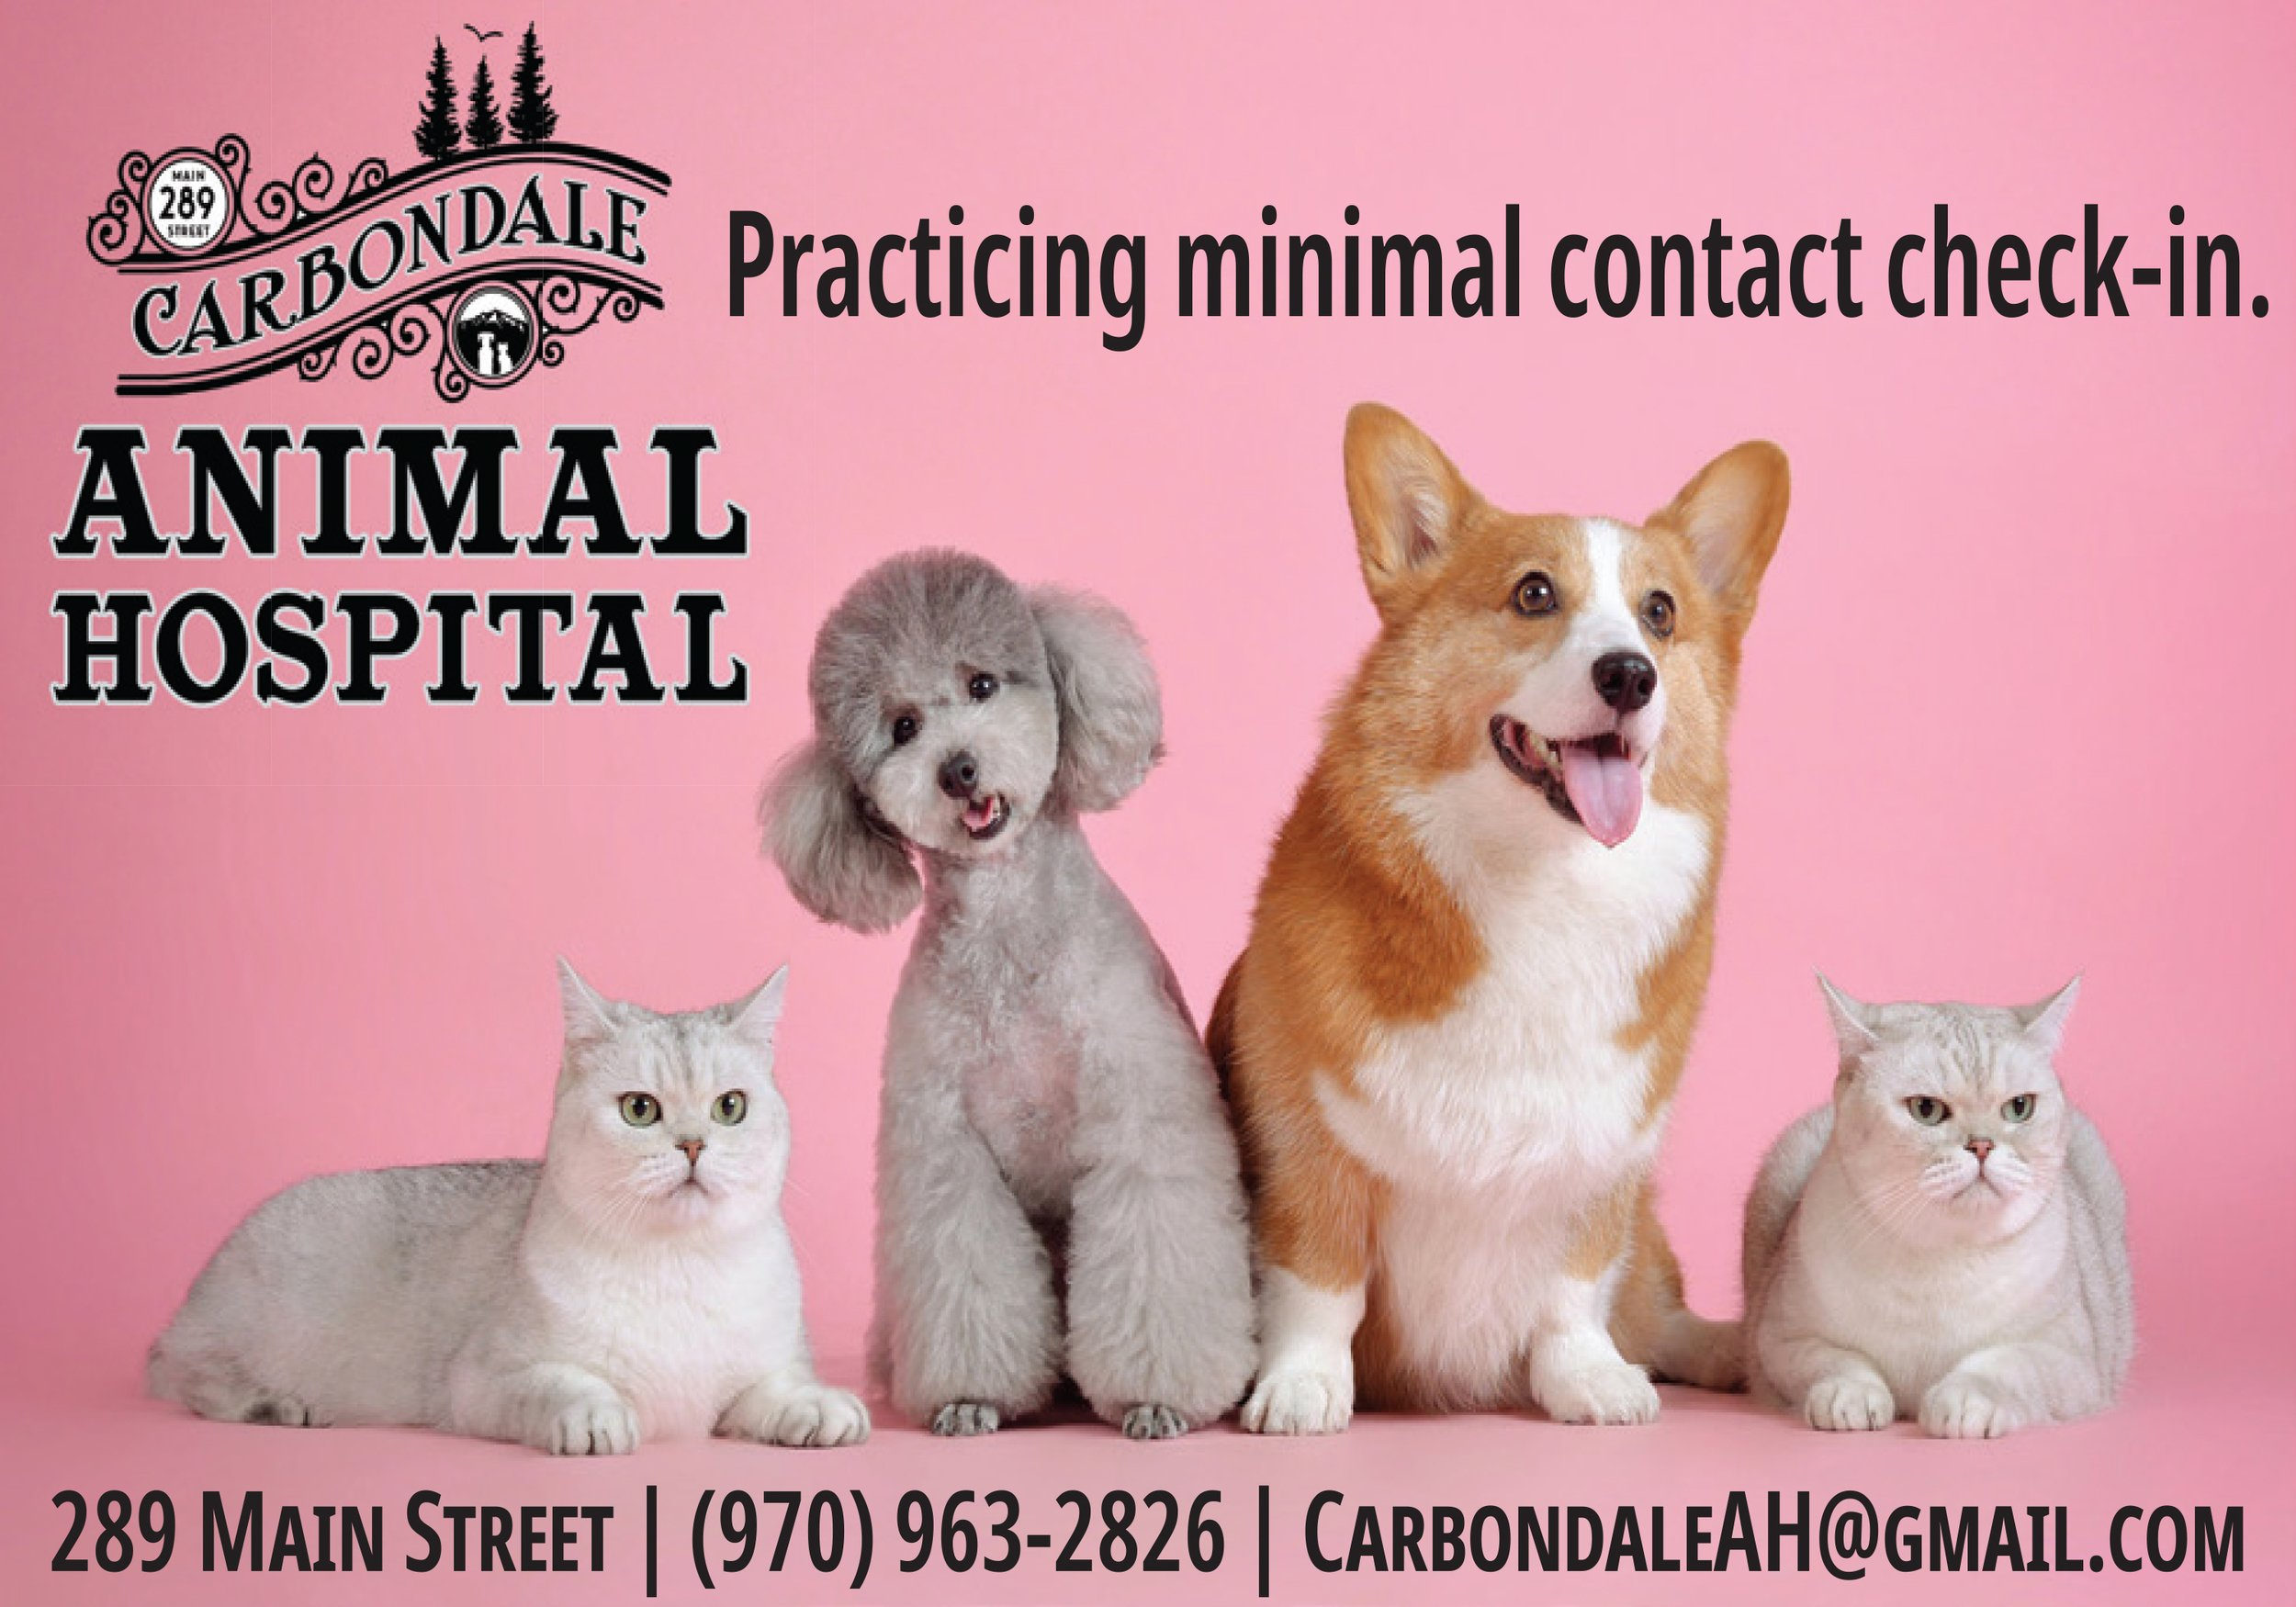 Carbondale Animal Hospital thumbnail